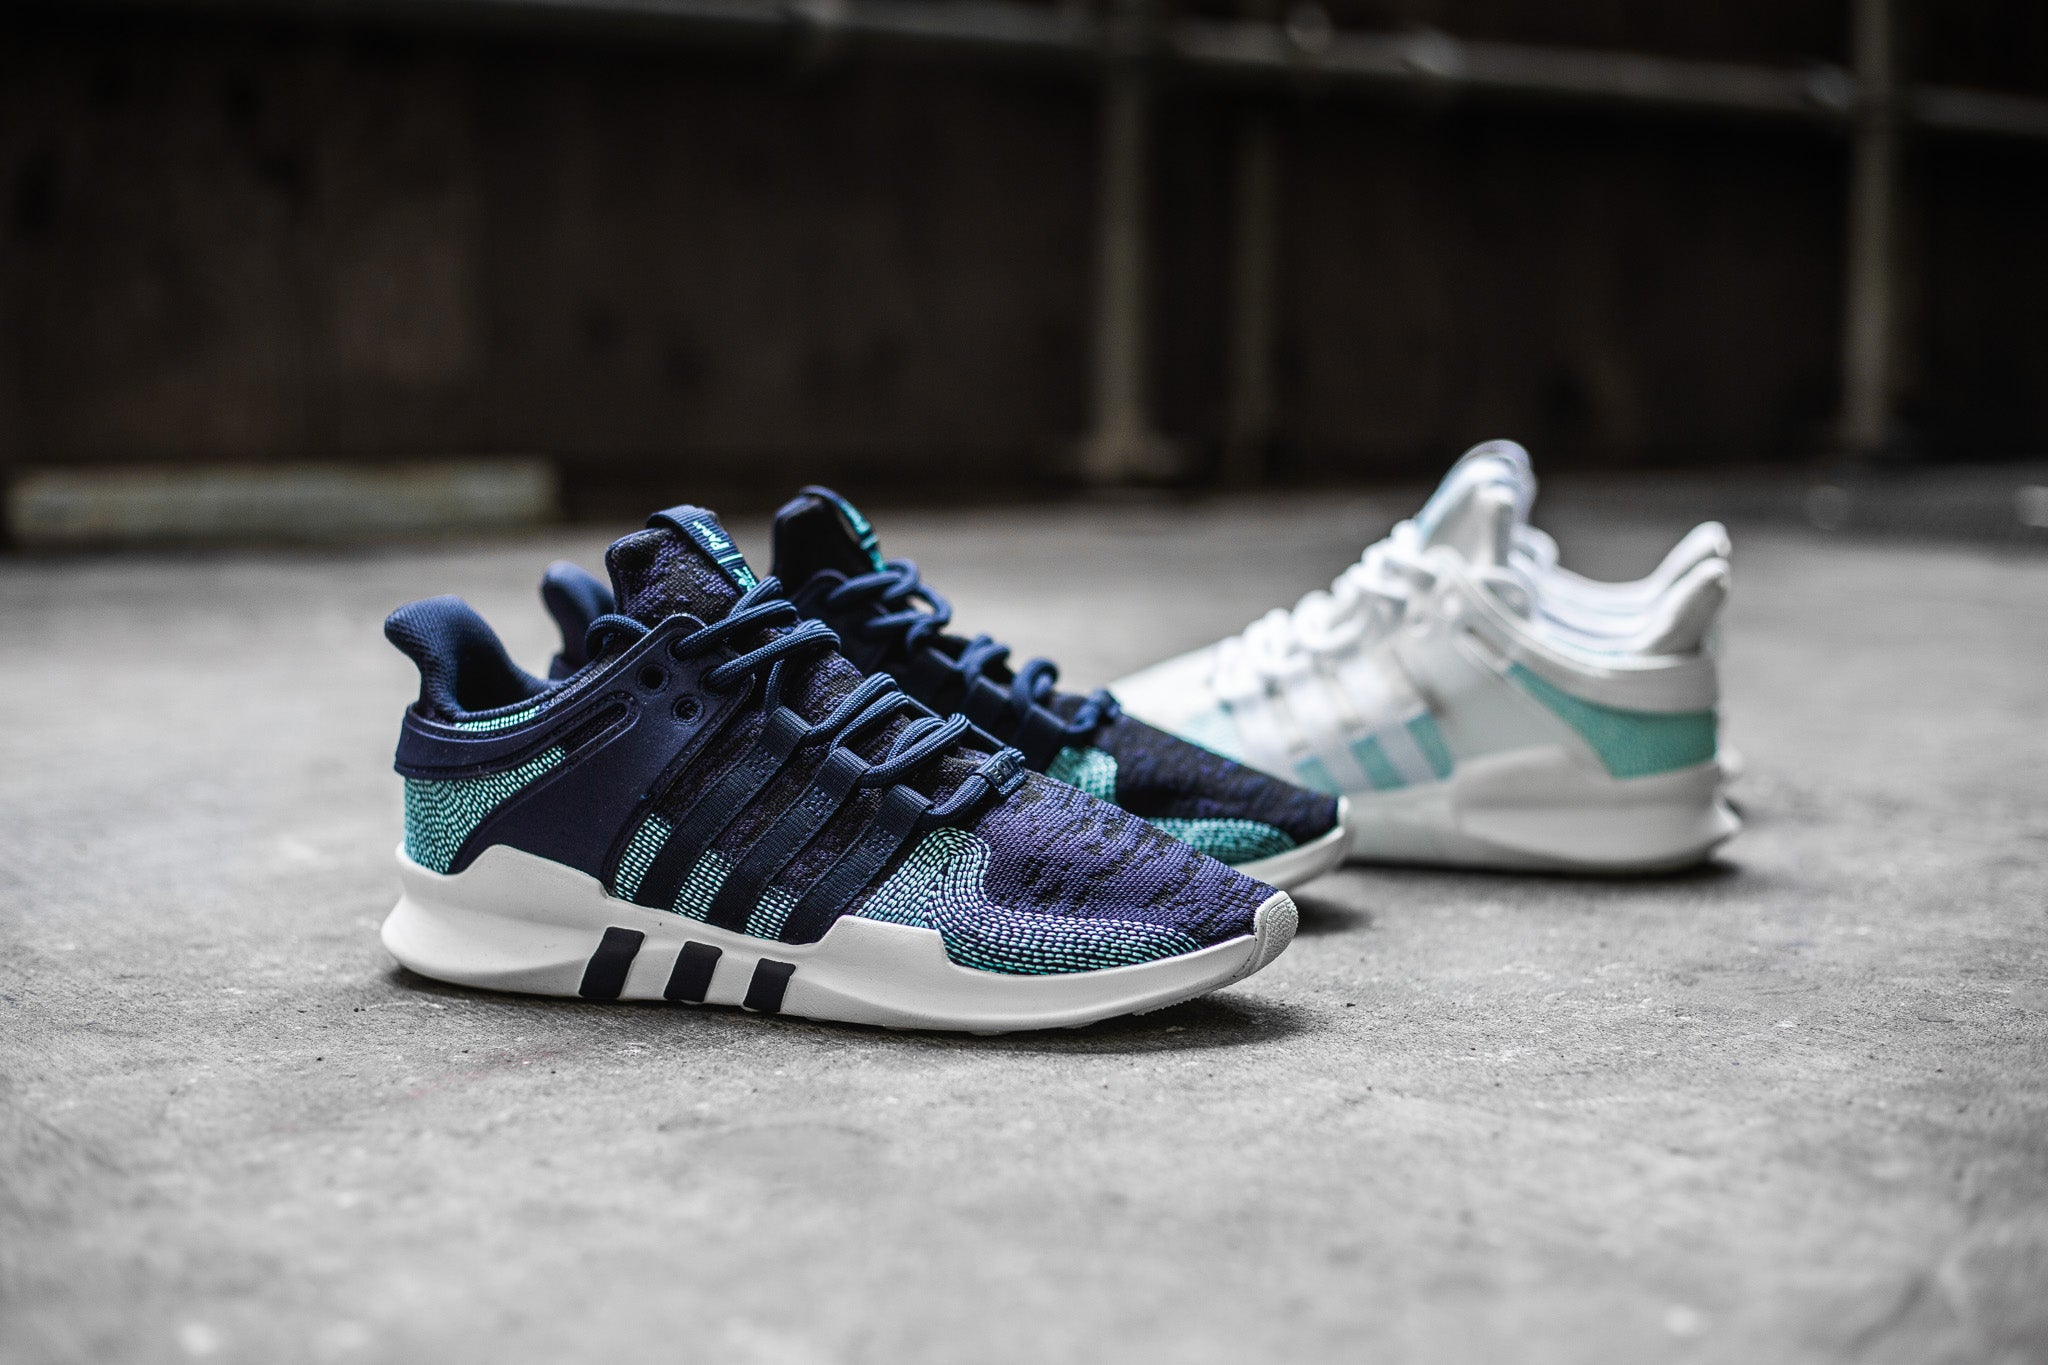 wholesale dealer 26255 14dff Parley x adidas EQT Support ADV Collection 10.14.17 ...